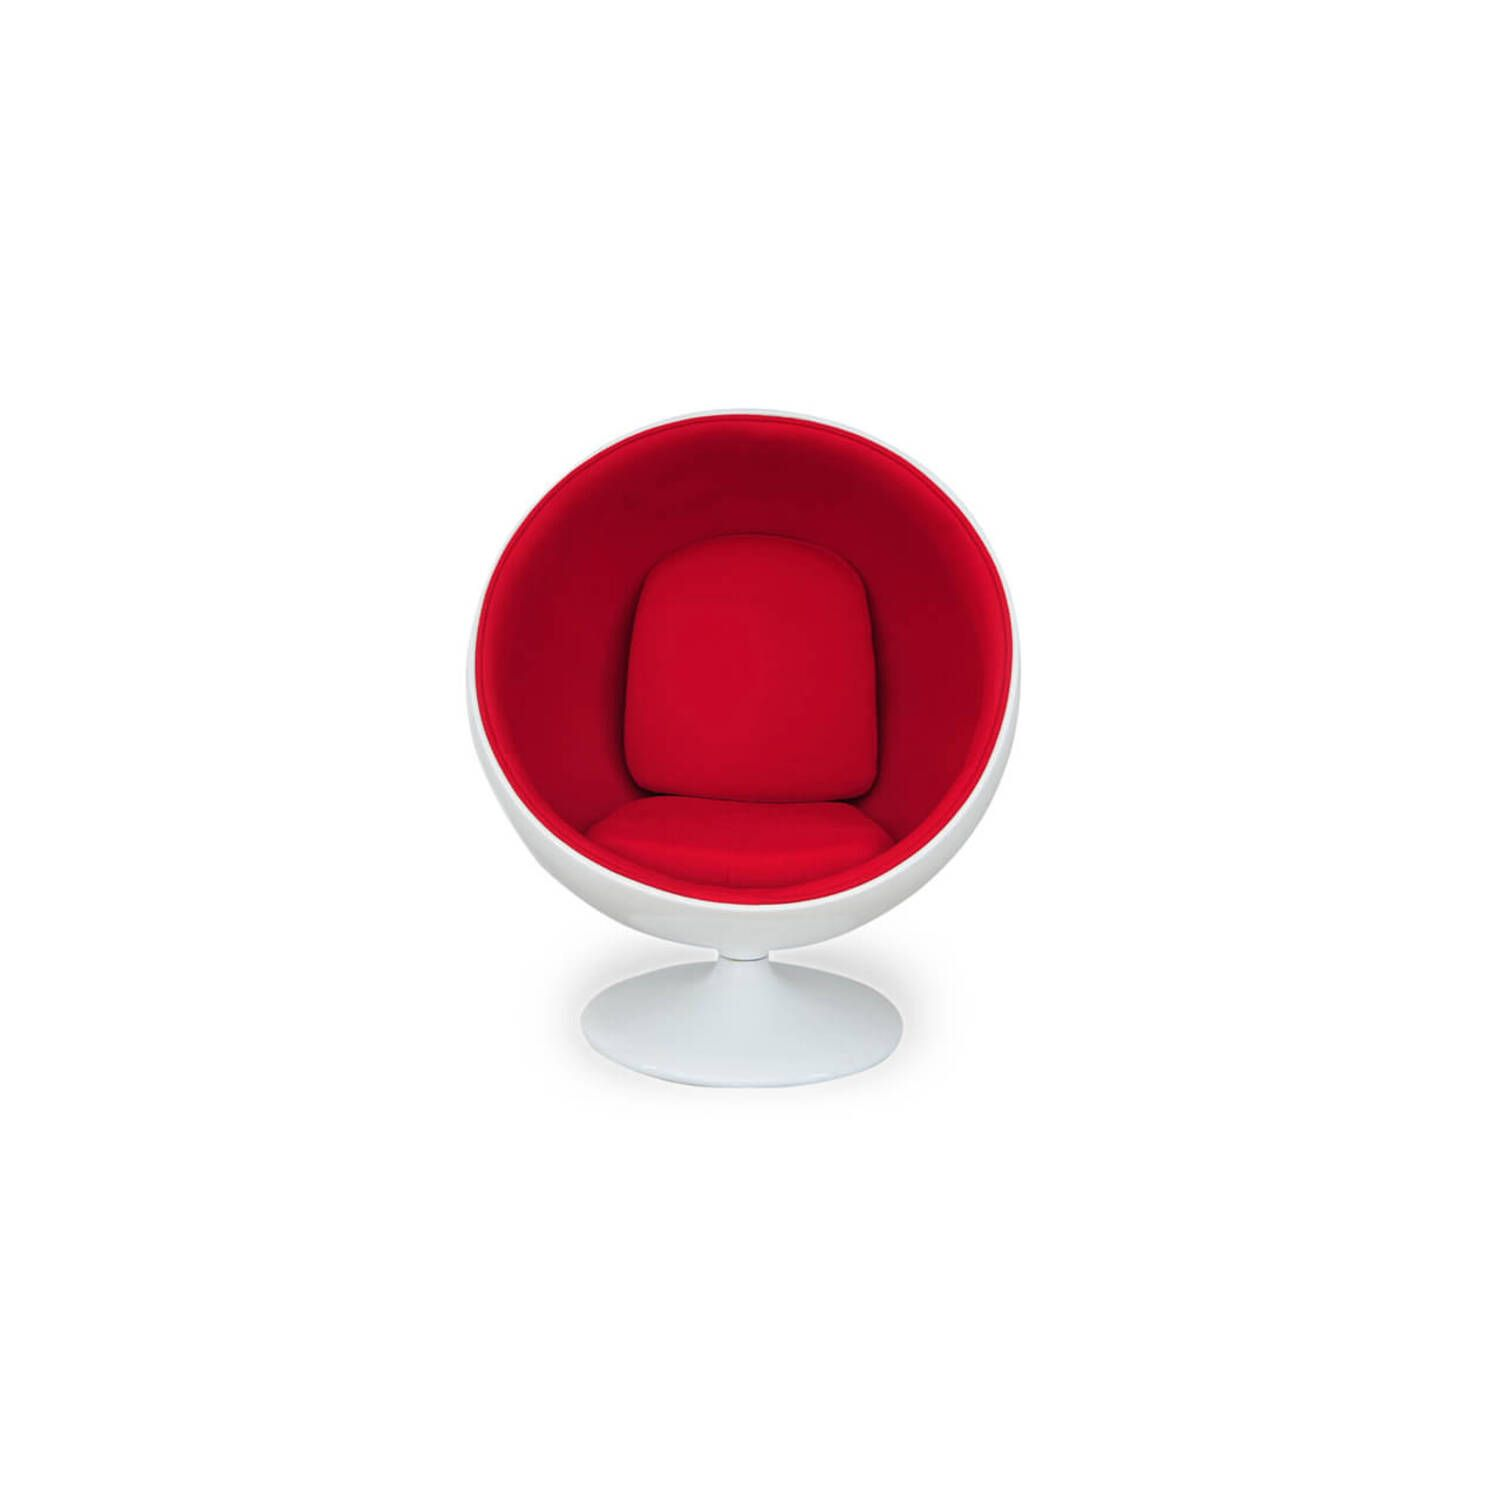 Кресло-шар Ball Chair бело-красное